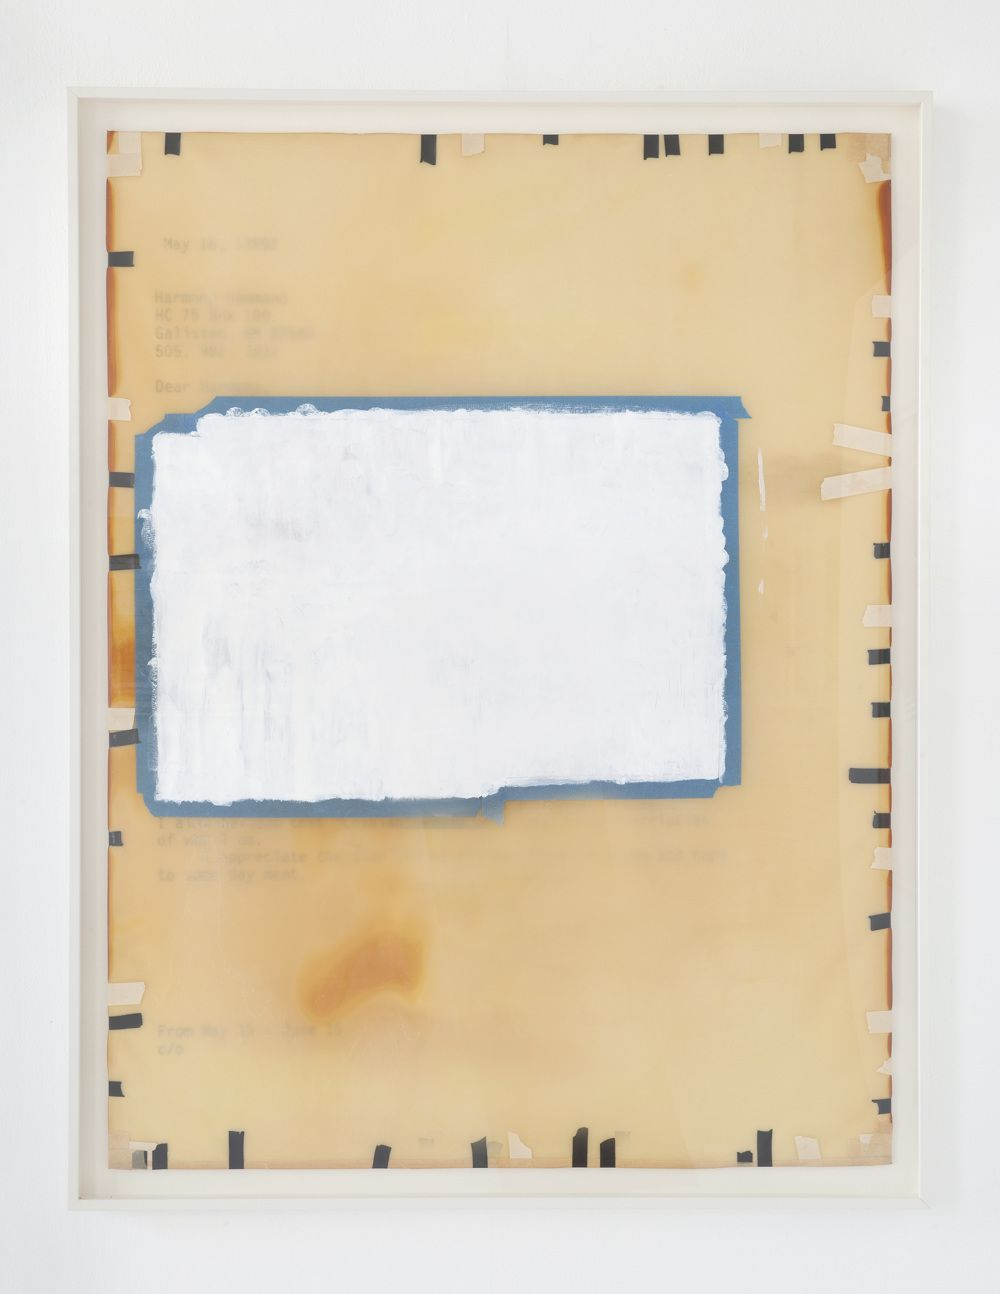 Erasure #2, 2002, Mixed media